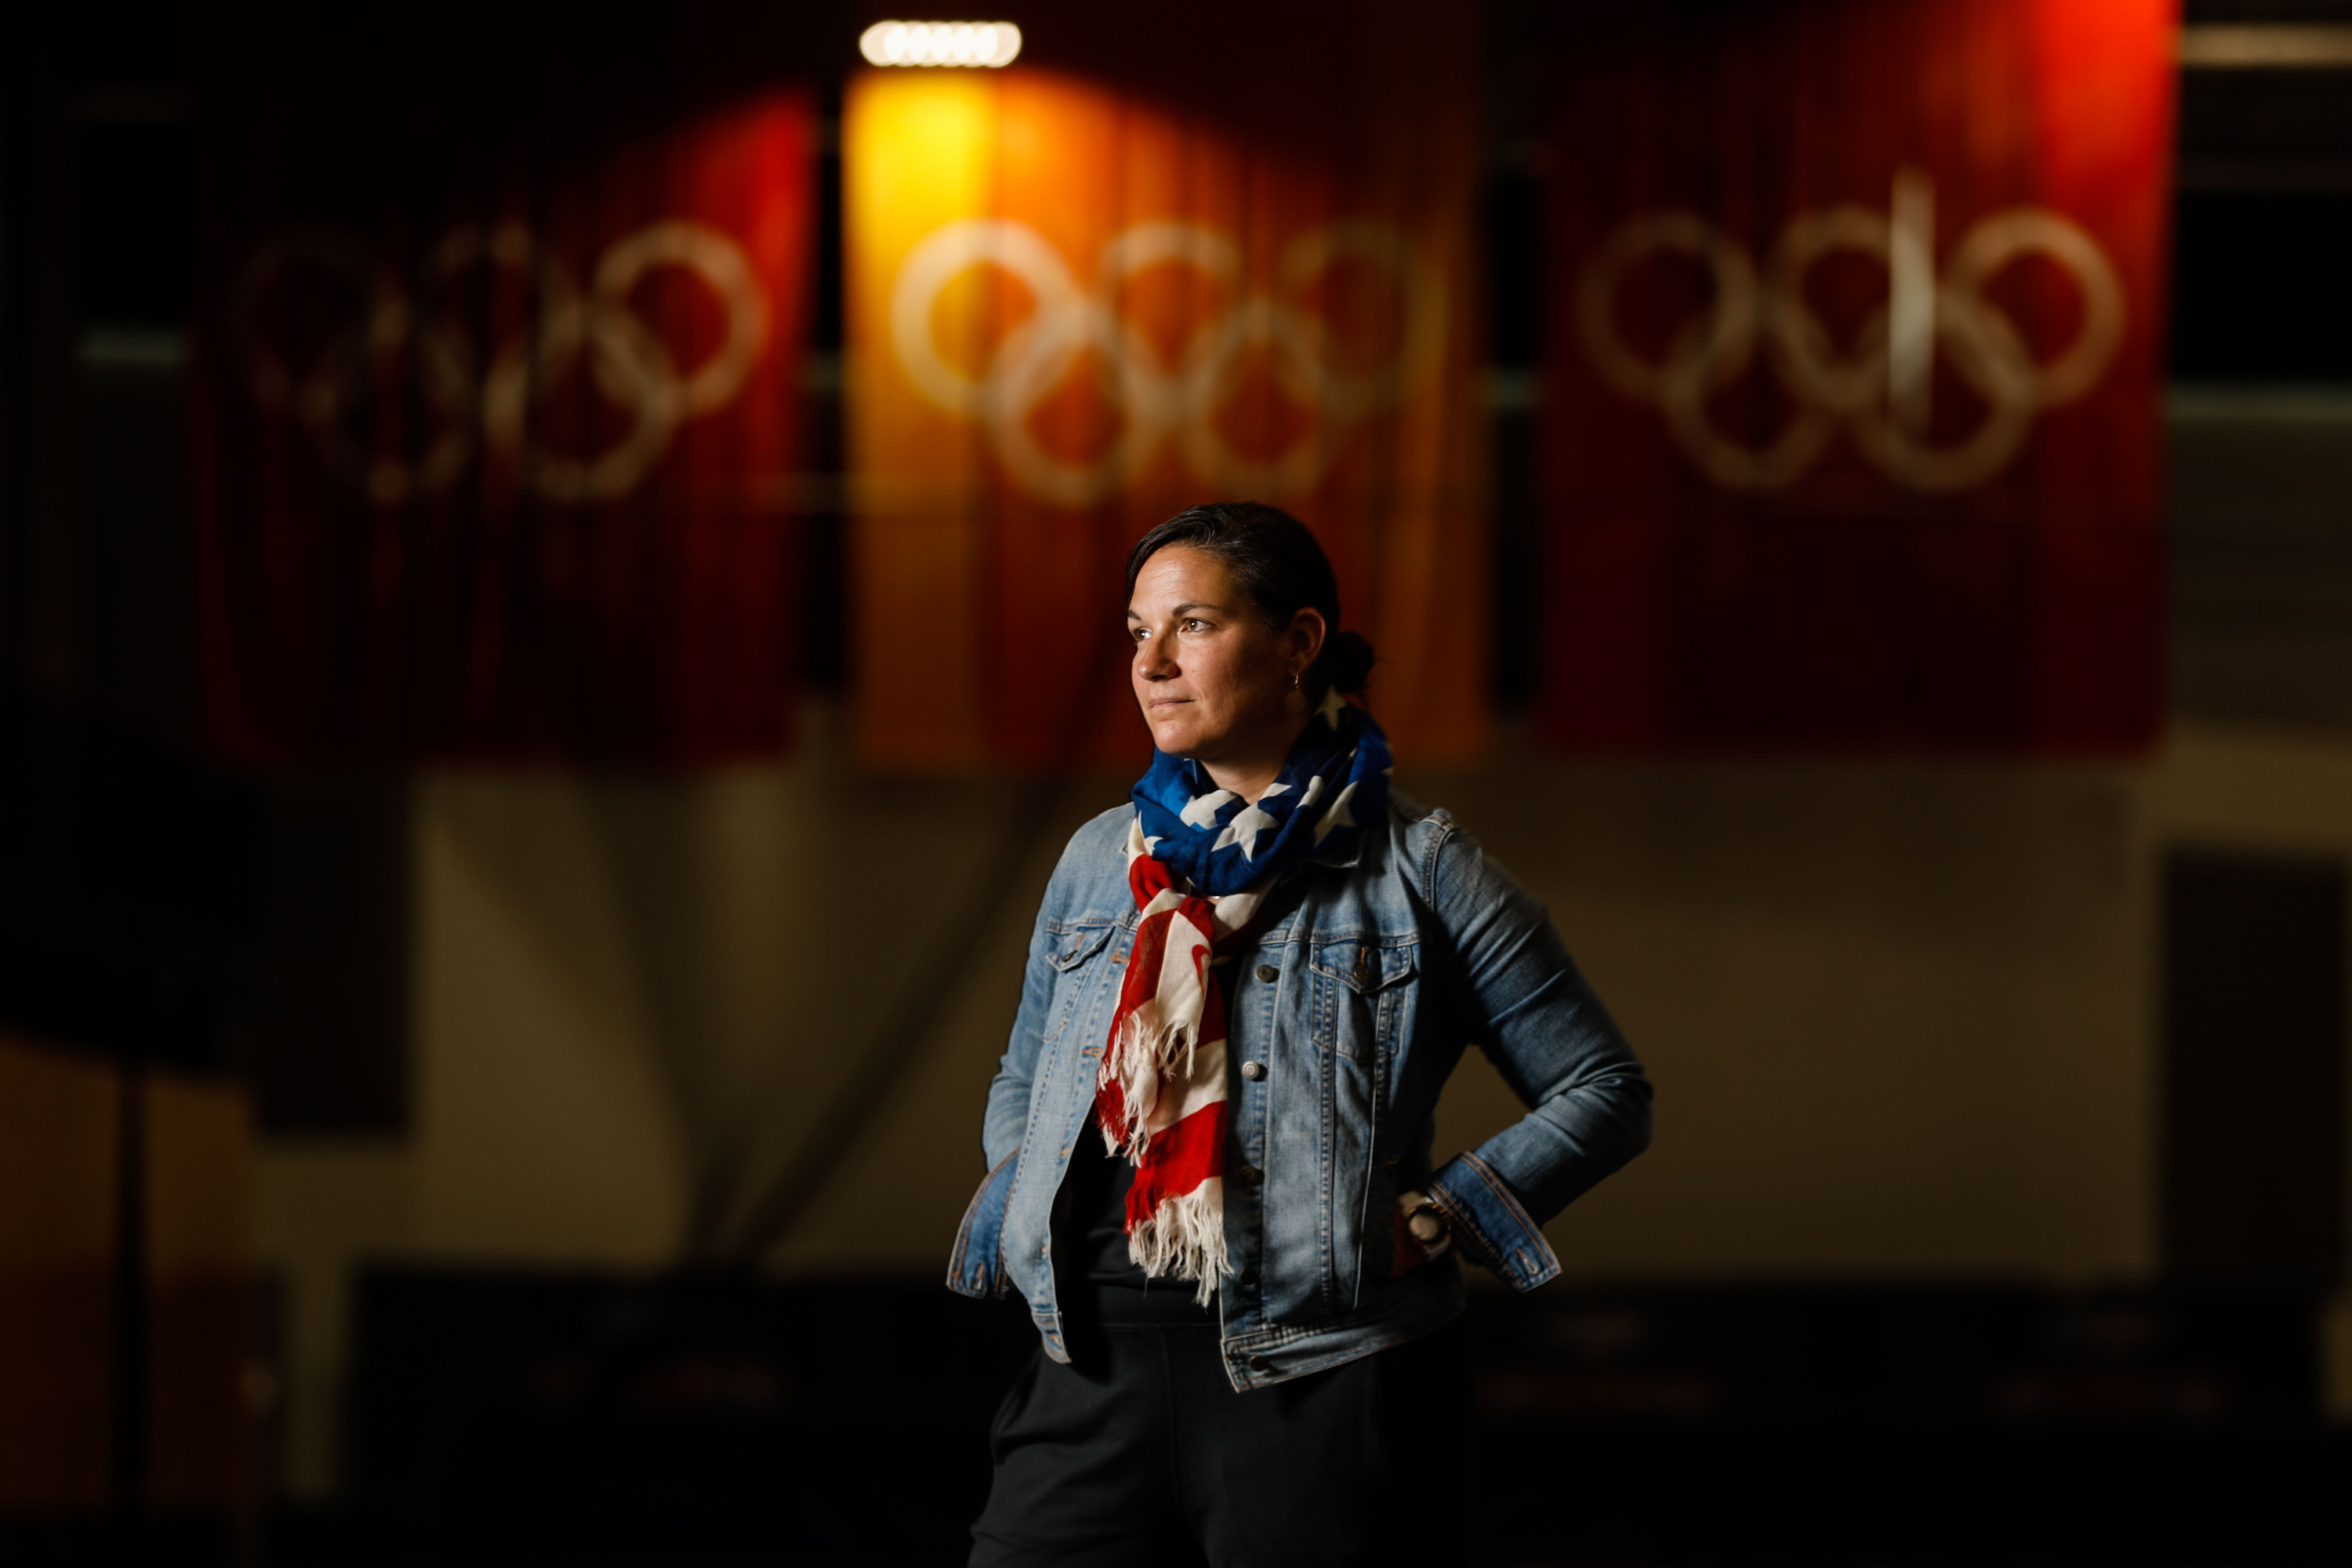 Catherine Raney Norman, Olympic speedskater and Salt Lake City-Committee for the Games bid leader, poses for a portrait at Utah Olympic Oval in Kearns on Saturday, Aug. 28, 2021.